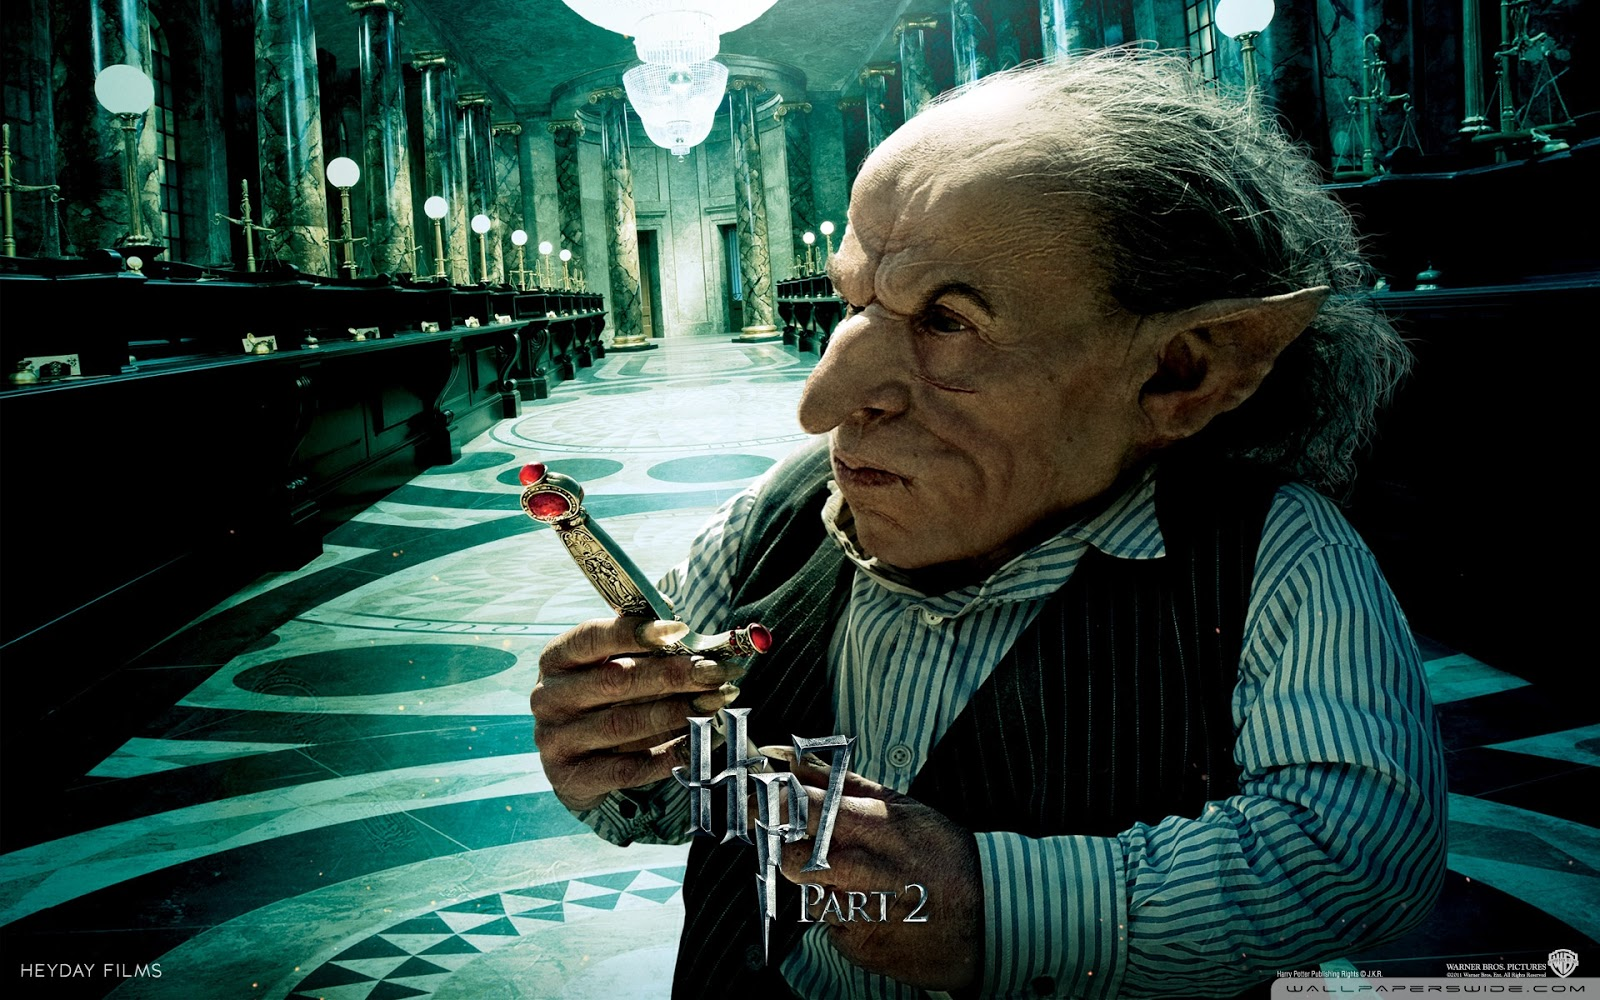 Harry Potter and the Deathly Hallows Part 2 Goblin Wallpaper